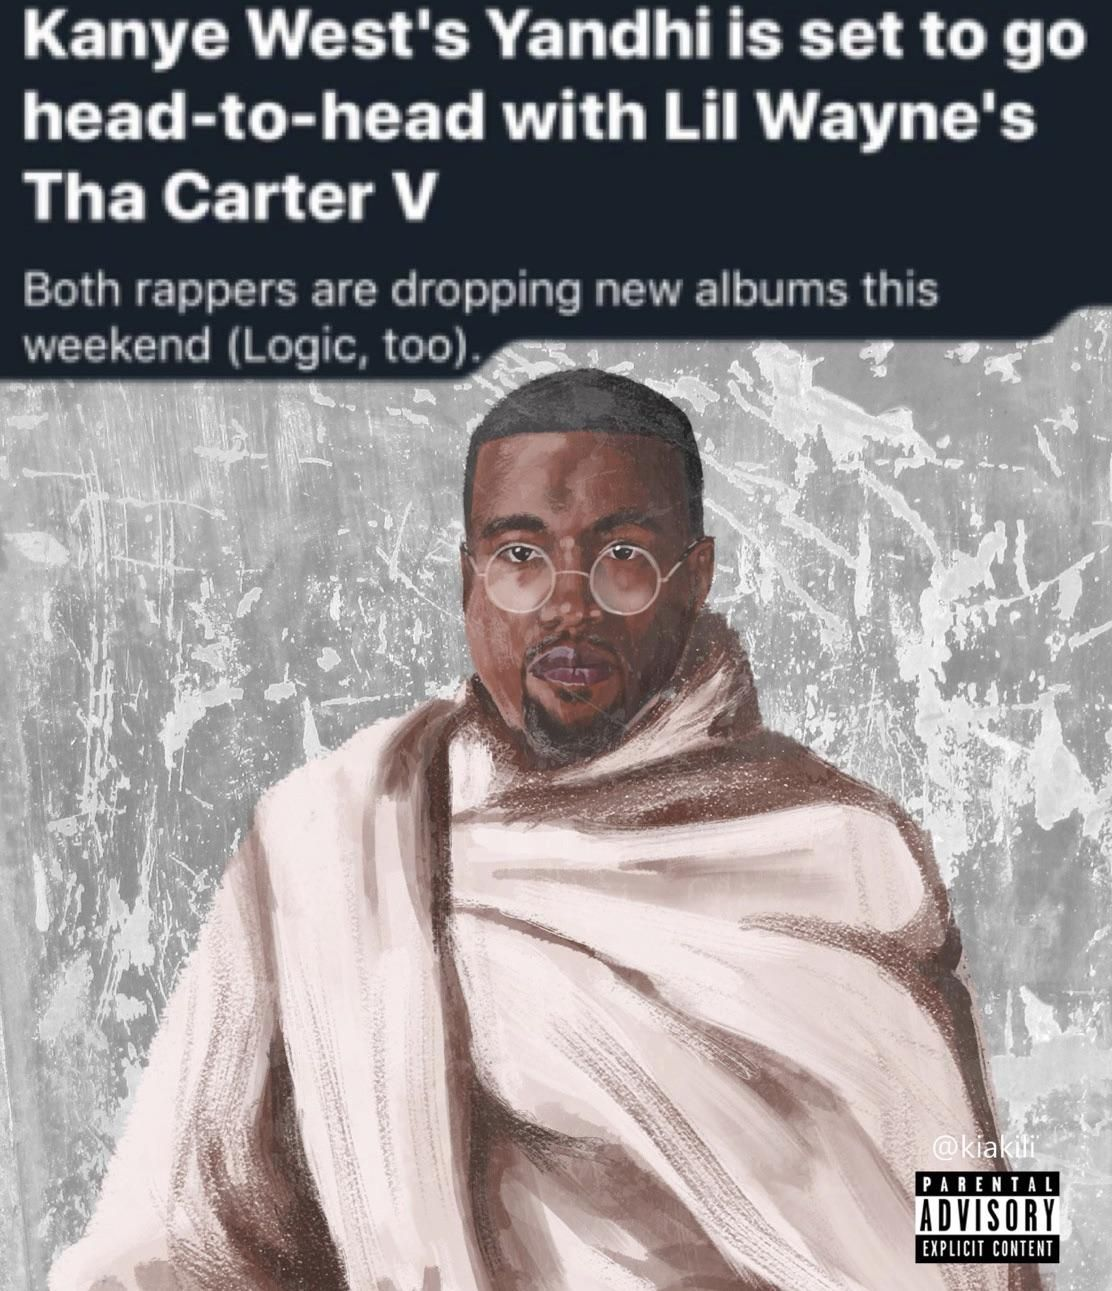 According To Kanye West He Is The Greatest Rapper Of All Time At Times He Is Funniest Too Many Of Funniest Kan Kanye West Funny Kanye West Kanye West Songs